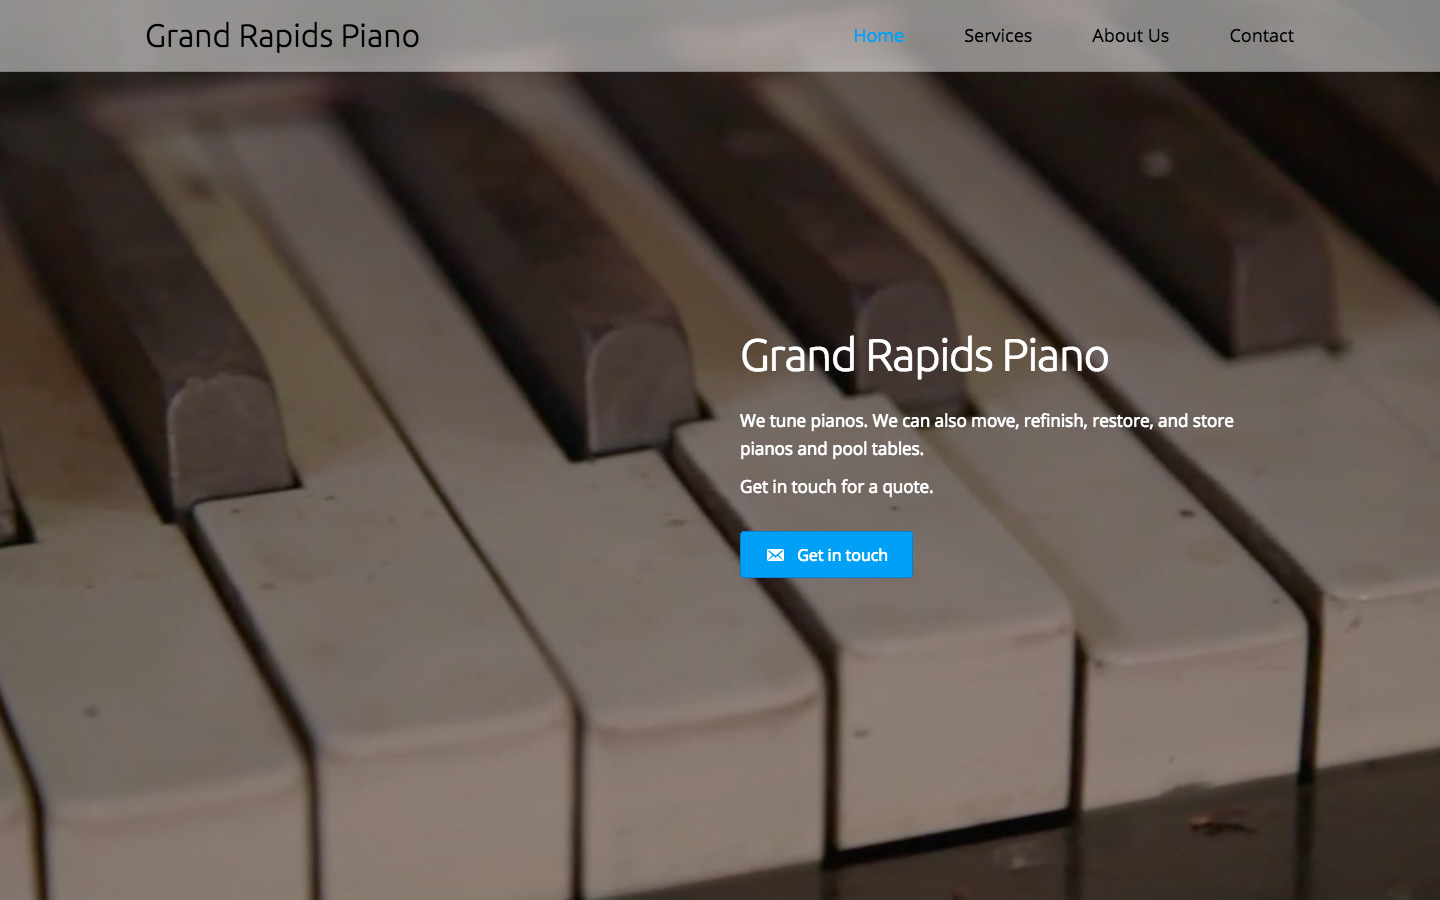 Web design and development for Grand Rapids Piano